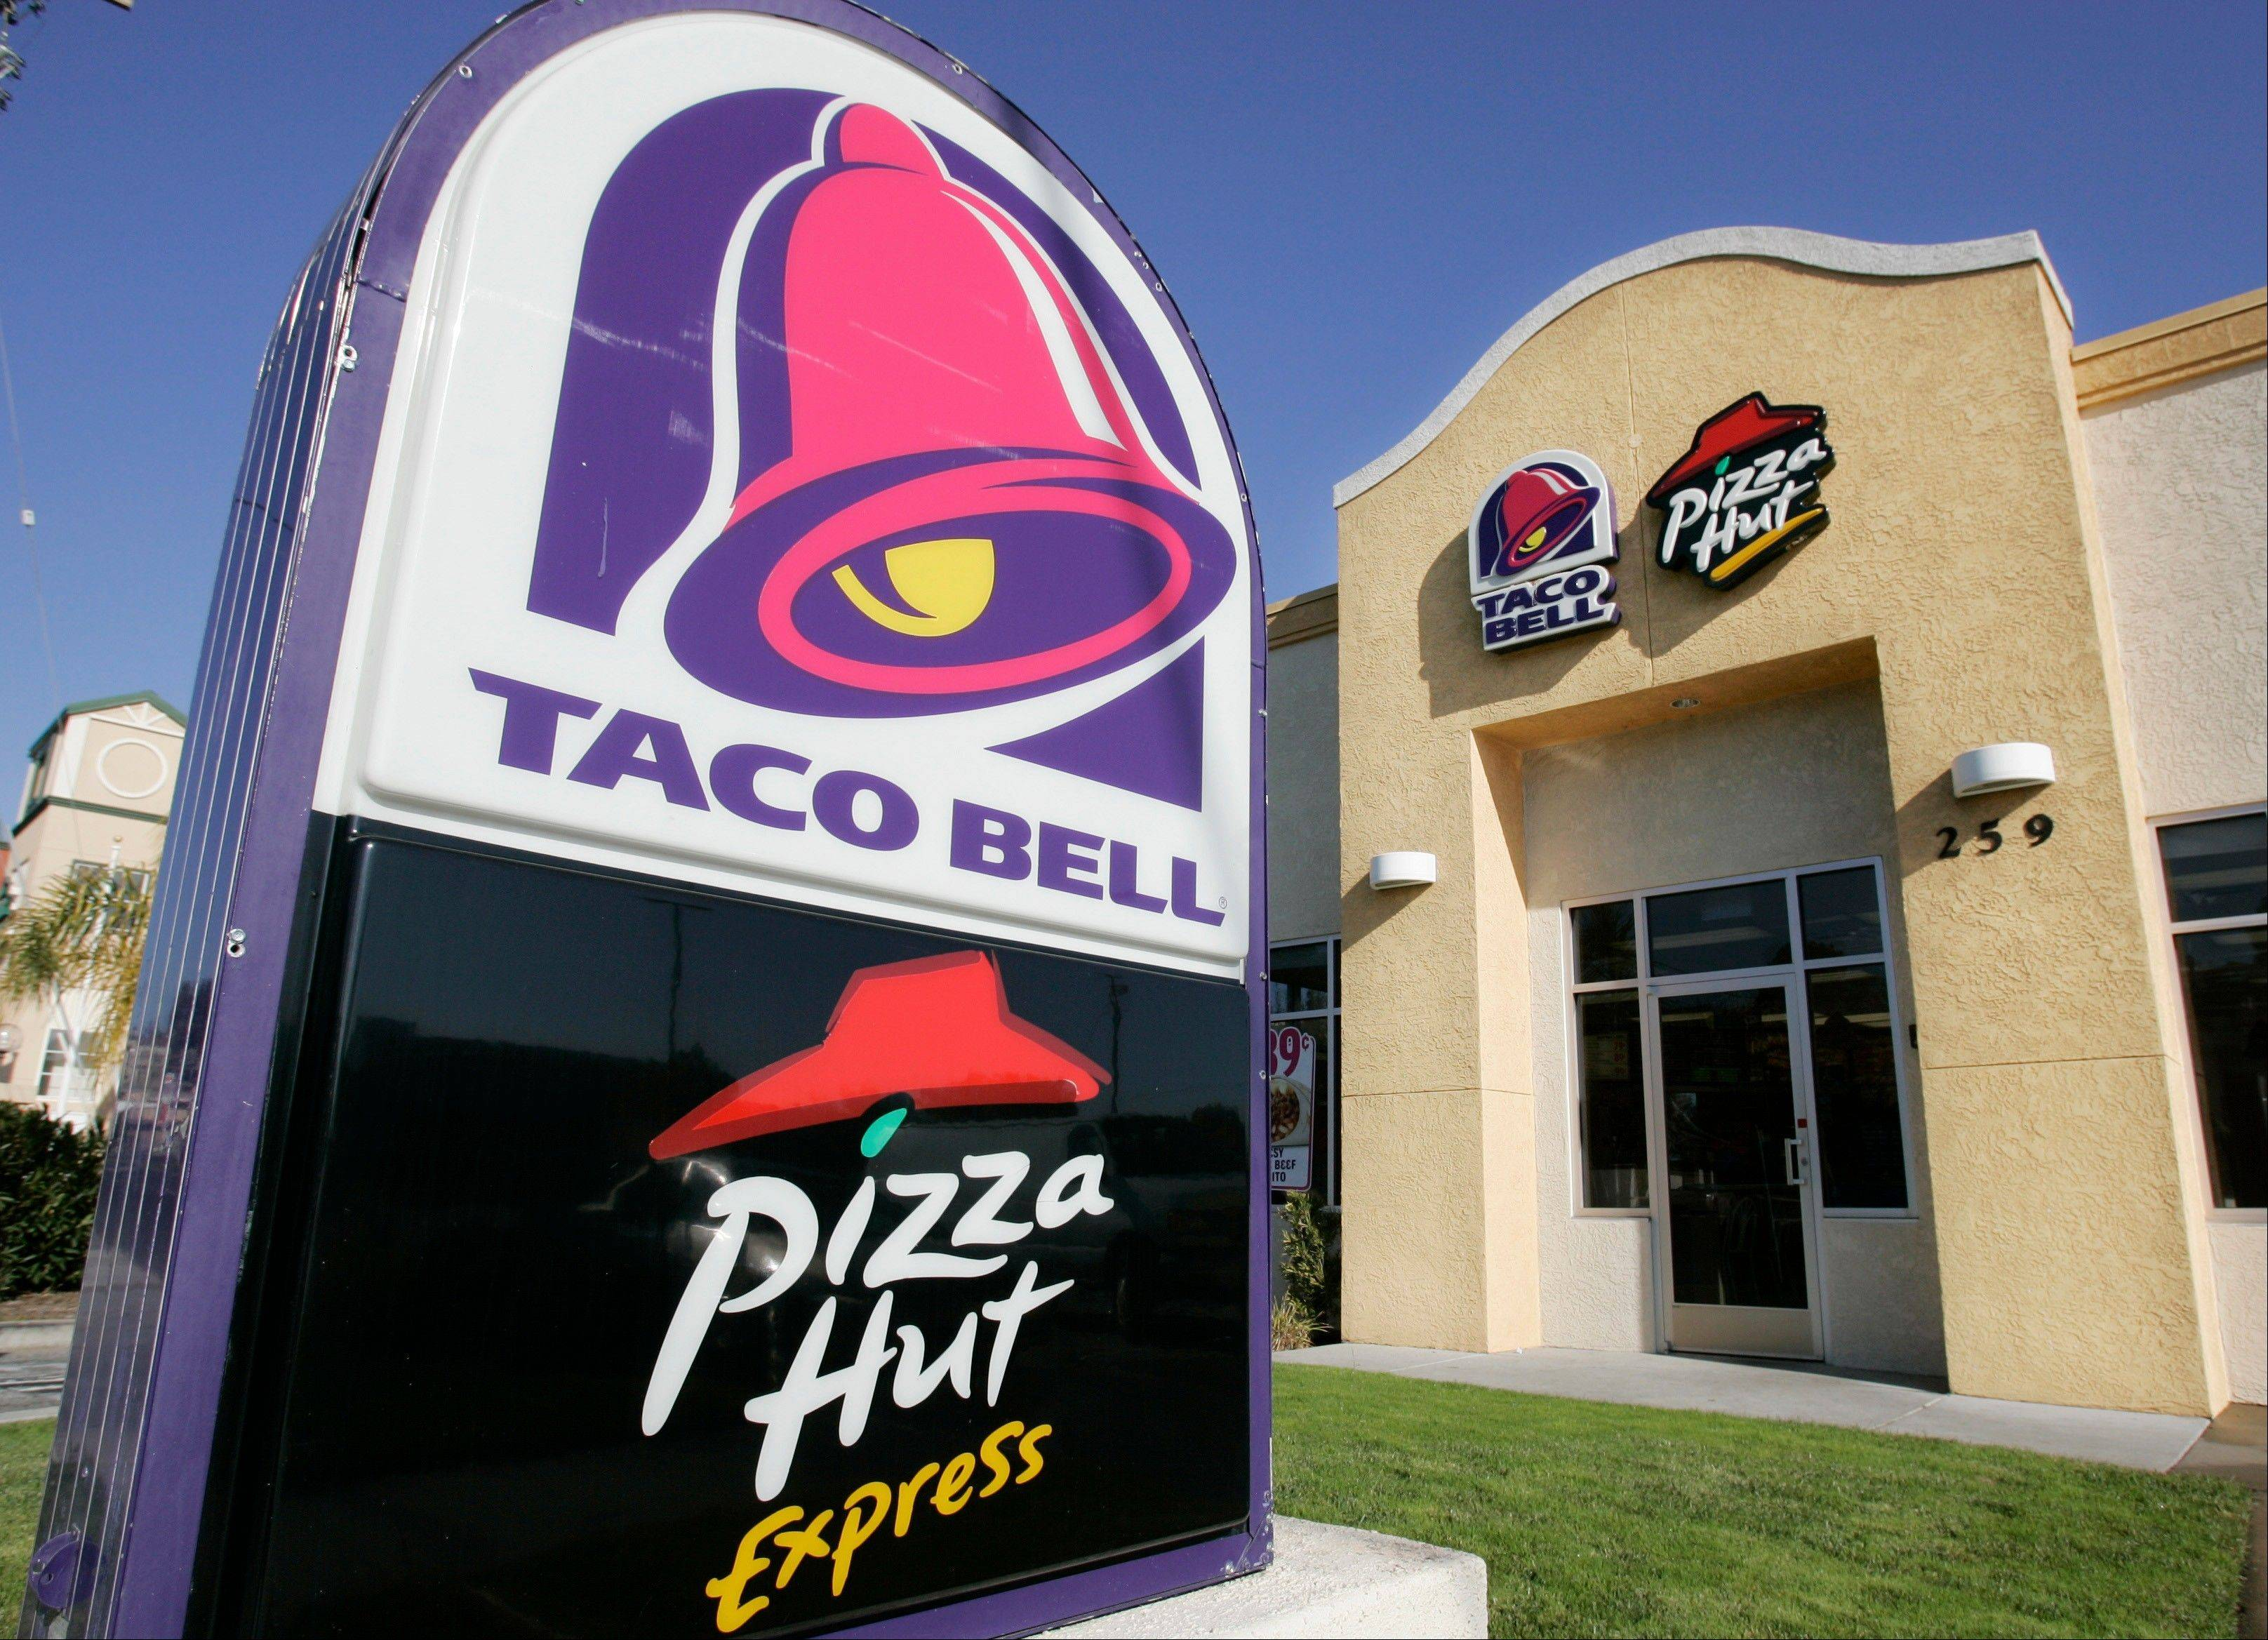 Taco Bell, the Mexican-style chain, plans to announce this week an expansion of its sweet treats menu, with the addition of churros and cookie sandwiches to its current lineup of cinnamon twists and caramel apple empanadas.